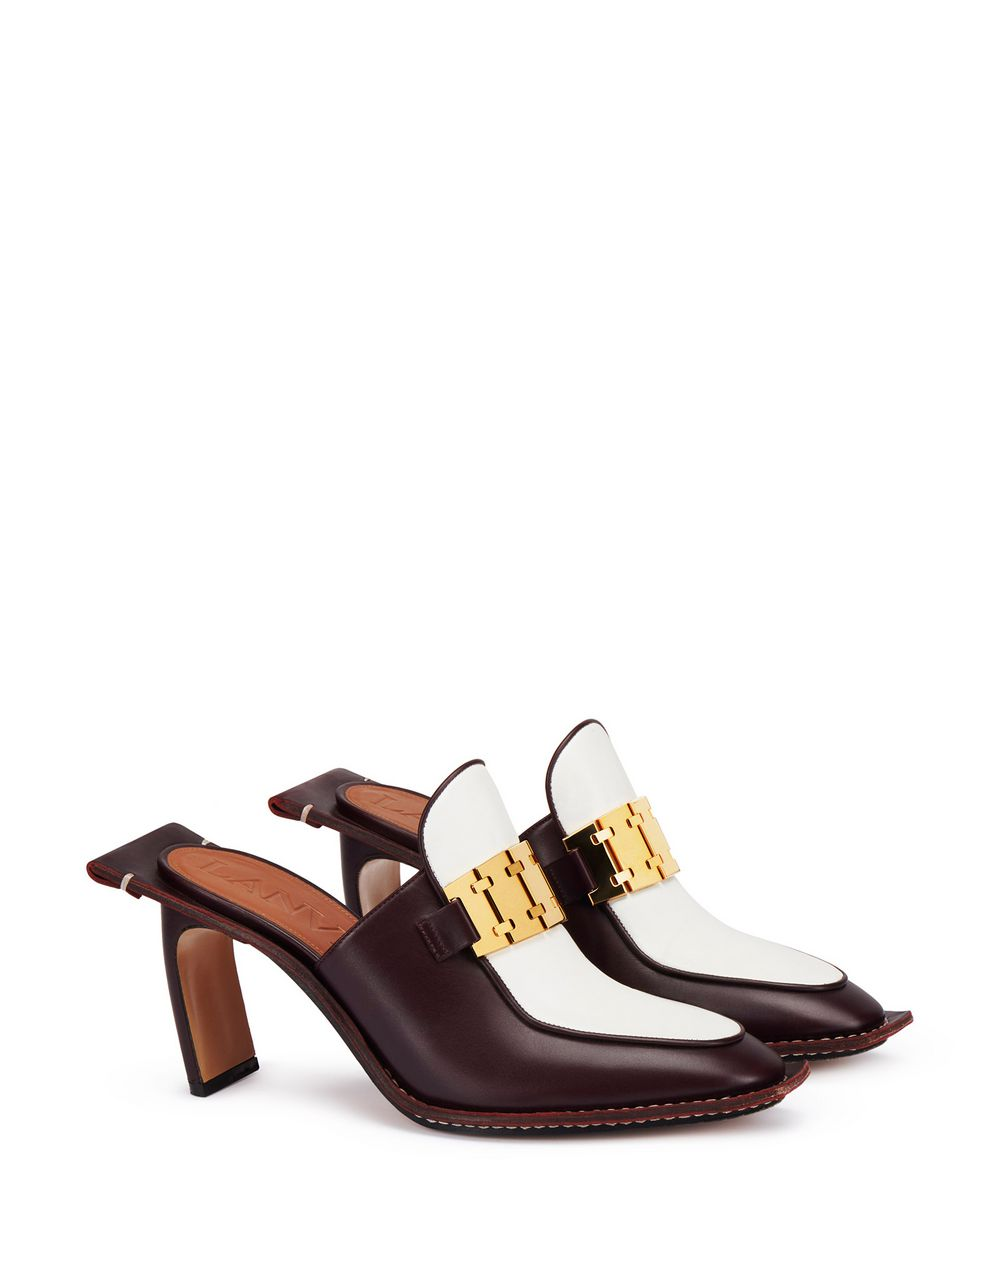 HIGH-HEELED GOURMETTE MULE  - Lanvin